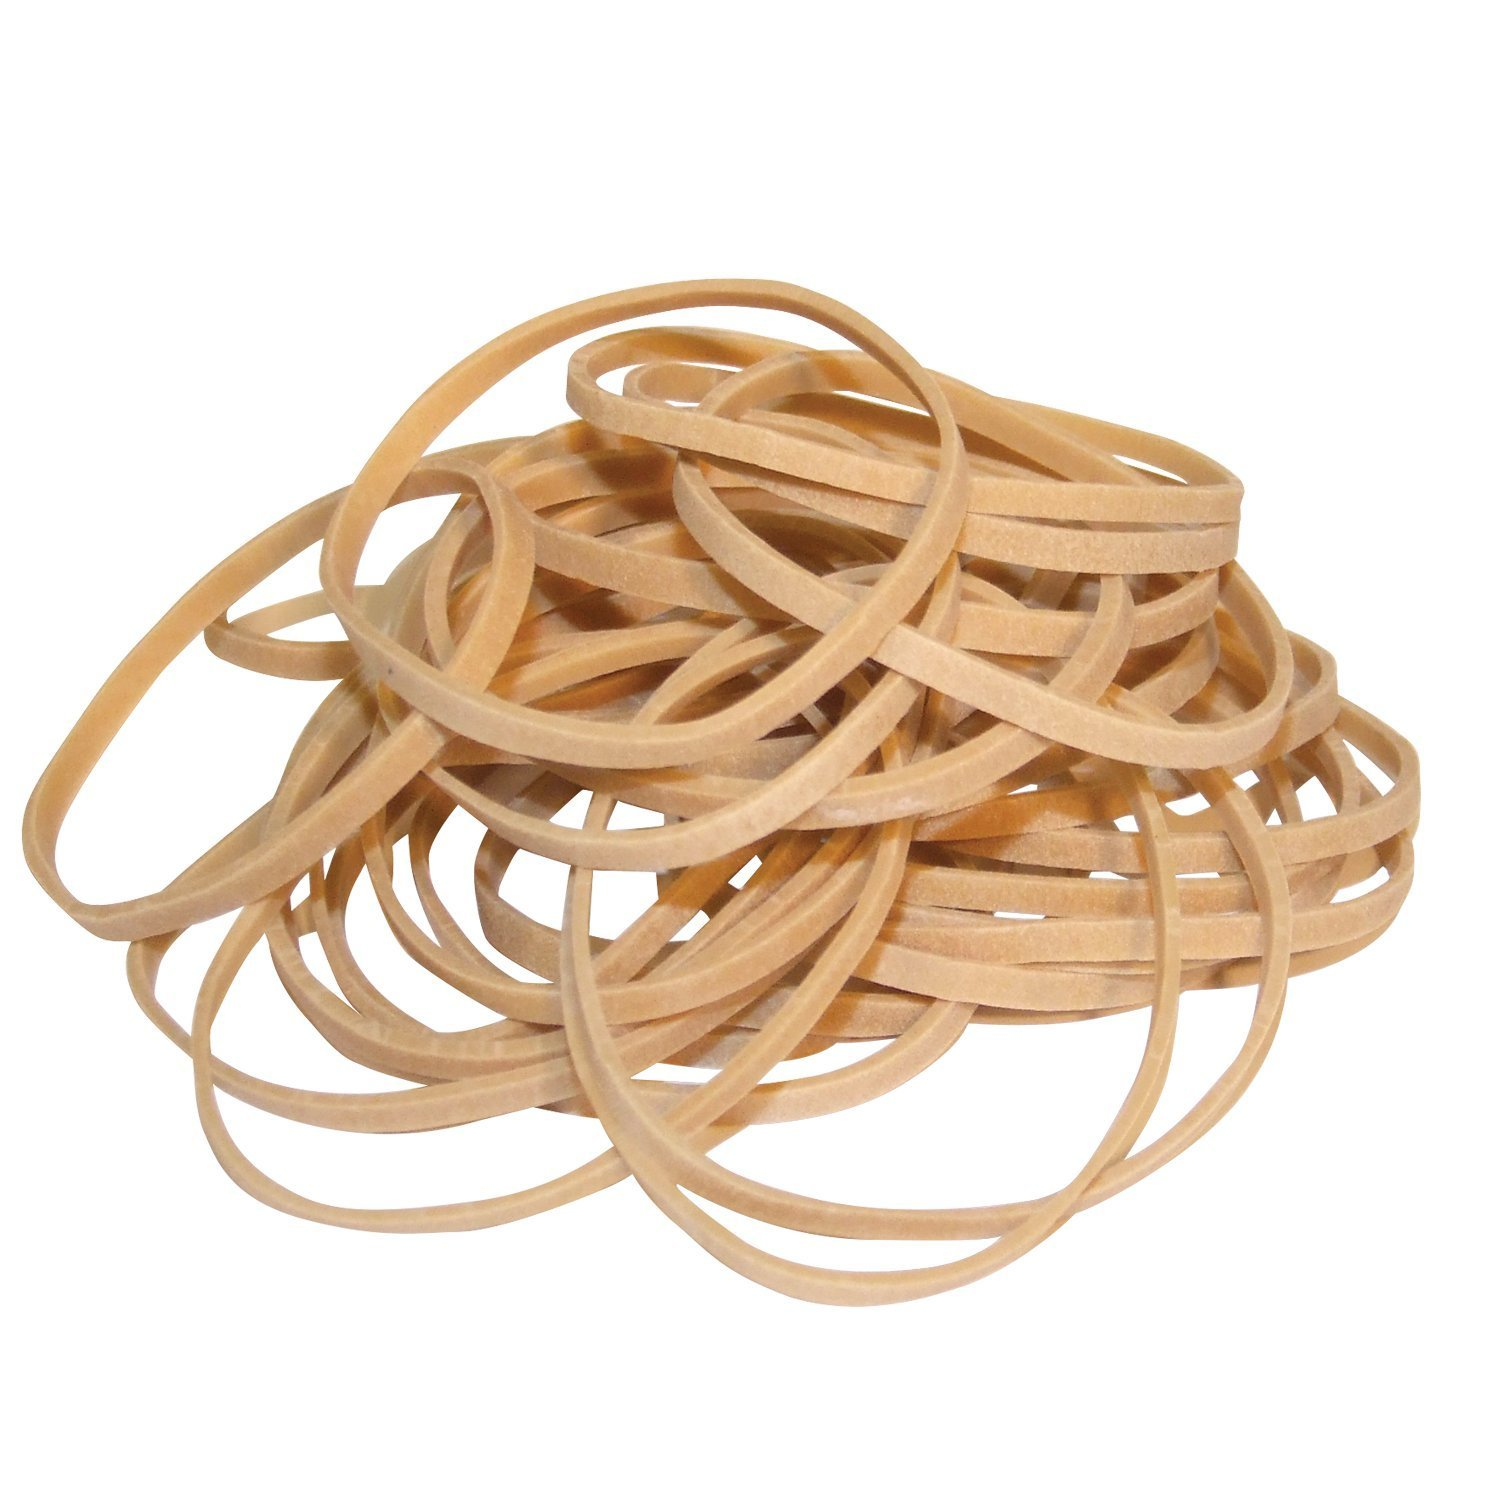 Value Rubber Bands (No 63) 6x76mm 454g